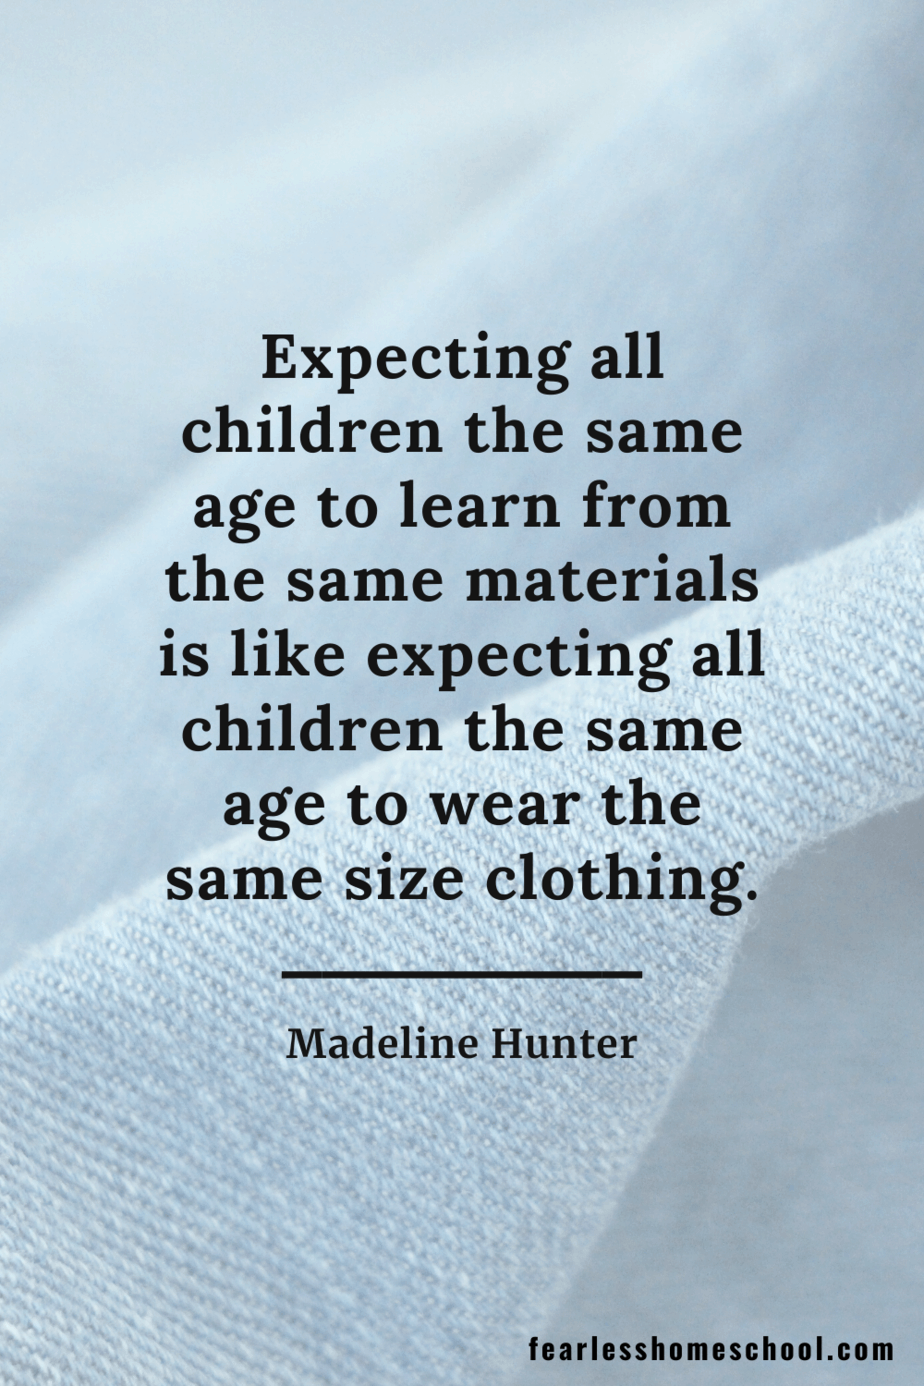 Expecting all children the same age to learn from the same materials is like expecting all children the same age to wear the same size clothing Madeline Hunter homeschooling quote